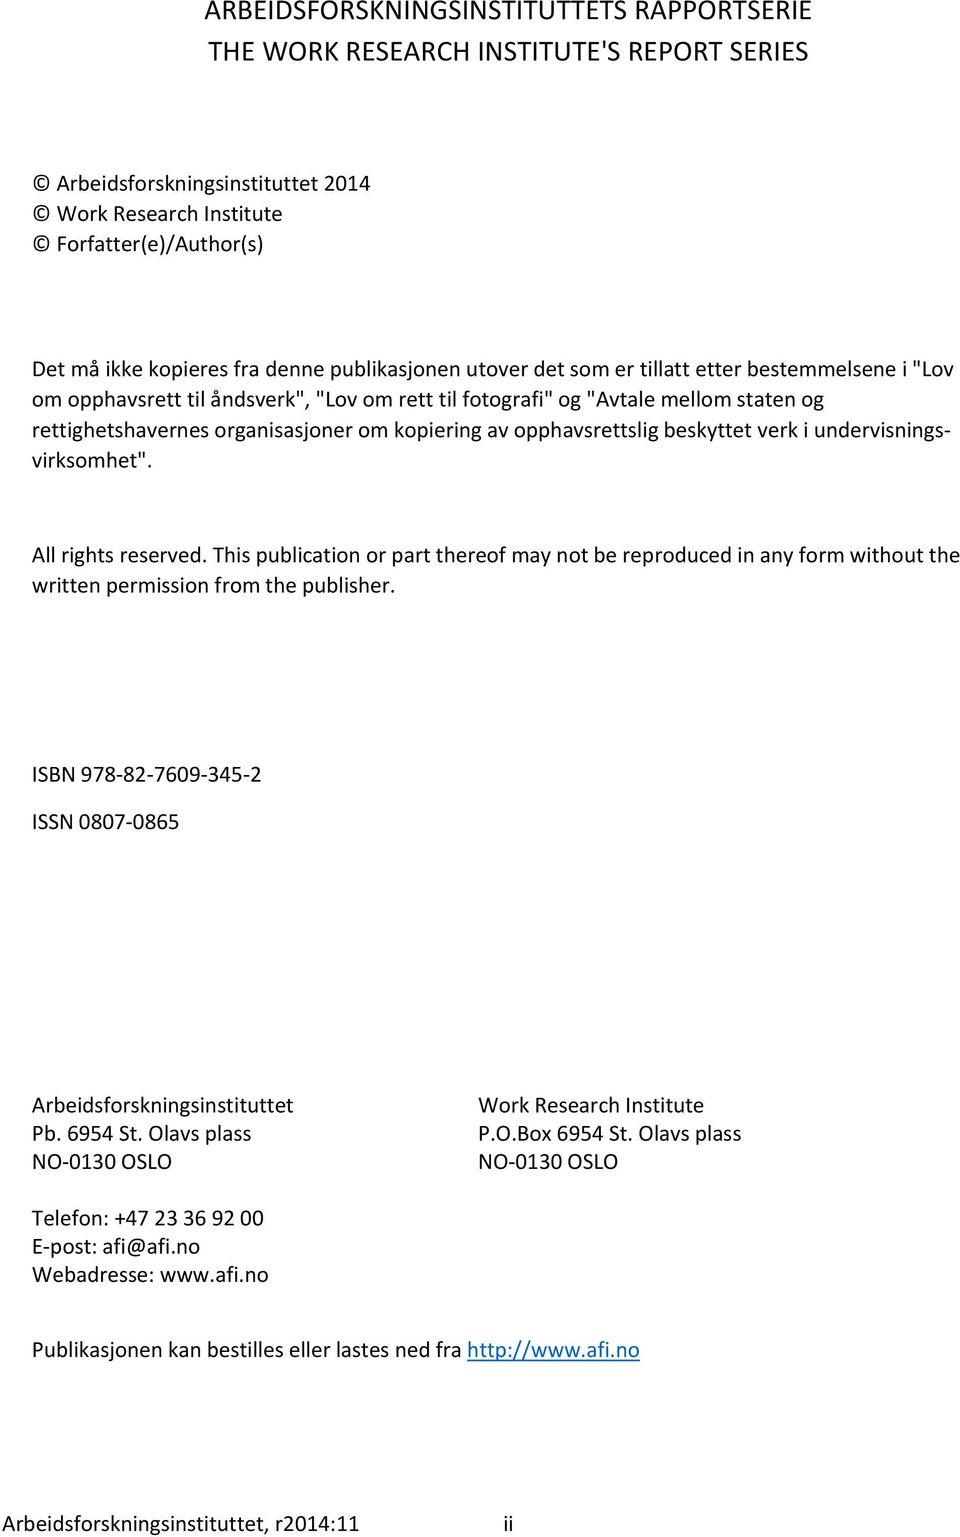 "av opphavsrettslig beskyttet verk i undervisningsvirksomhet"". All rights reserved. This publication or part thereof may not be reproduced in any form without the written permission from the publisher."